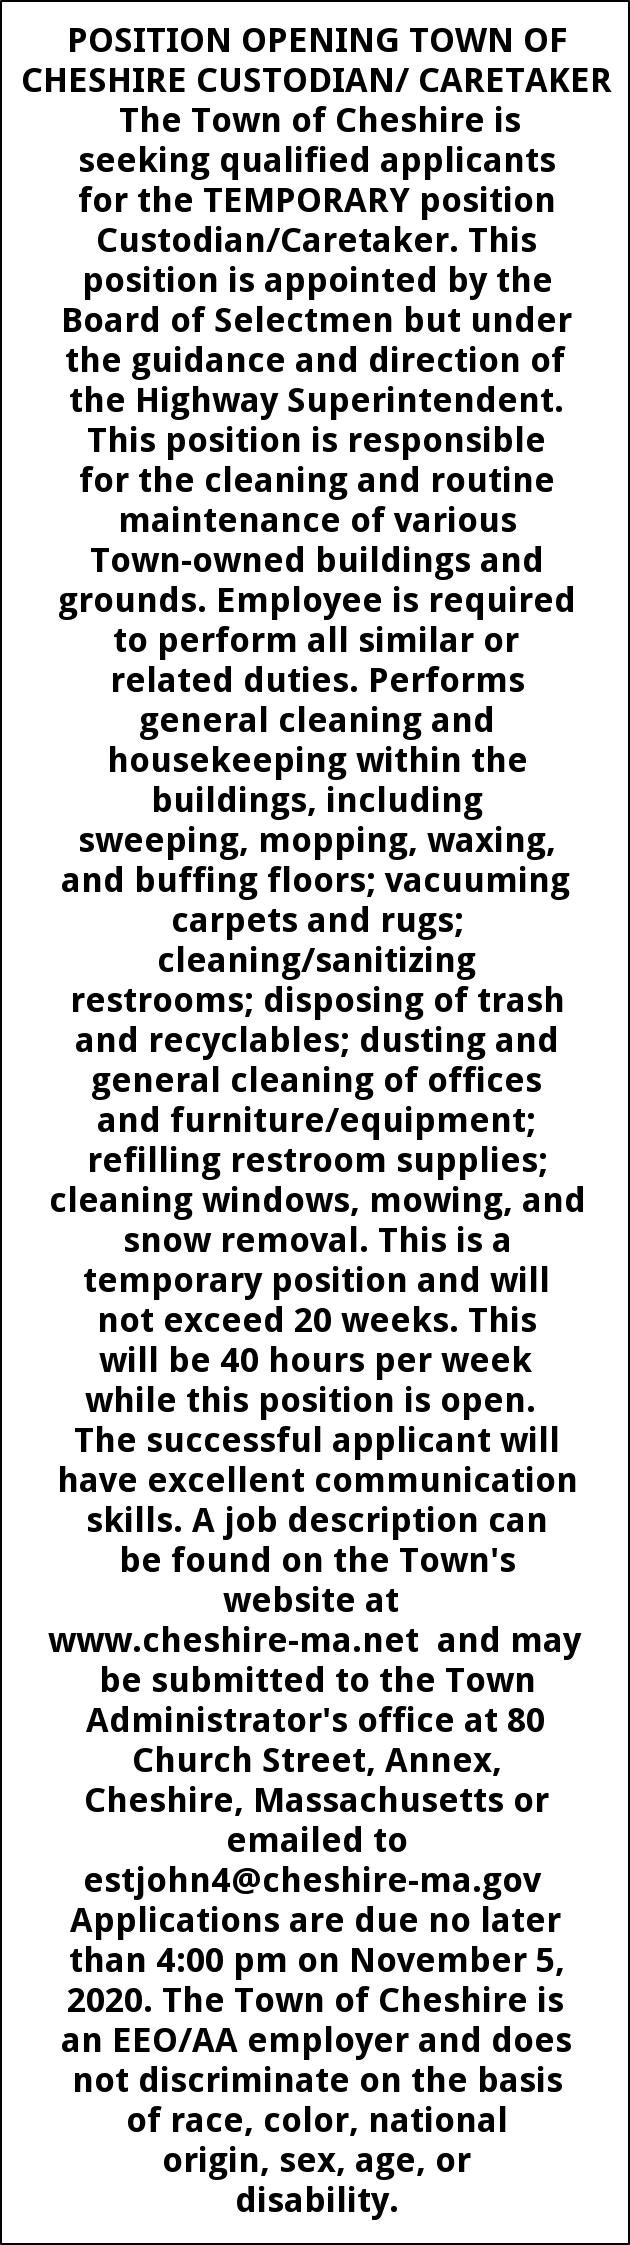 Cheshire Custodian / Caretaker